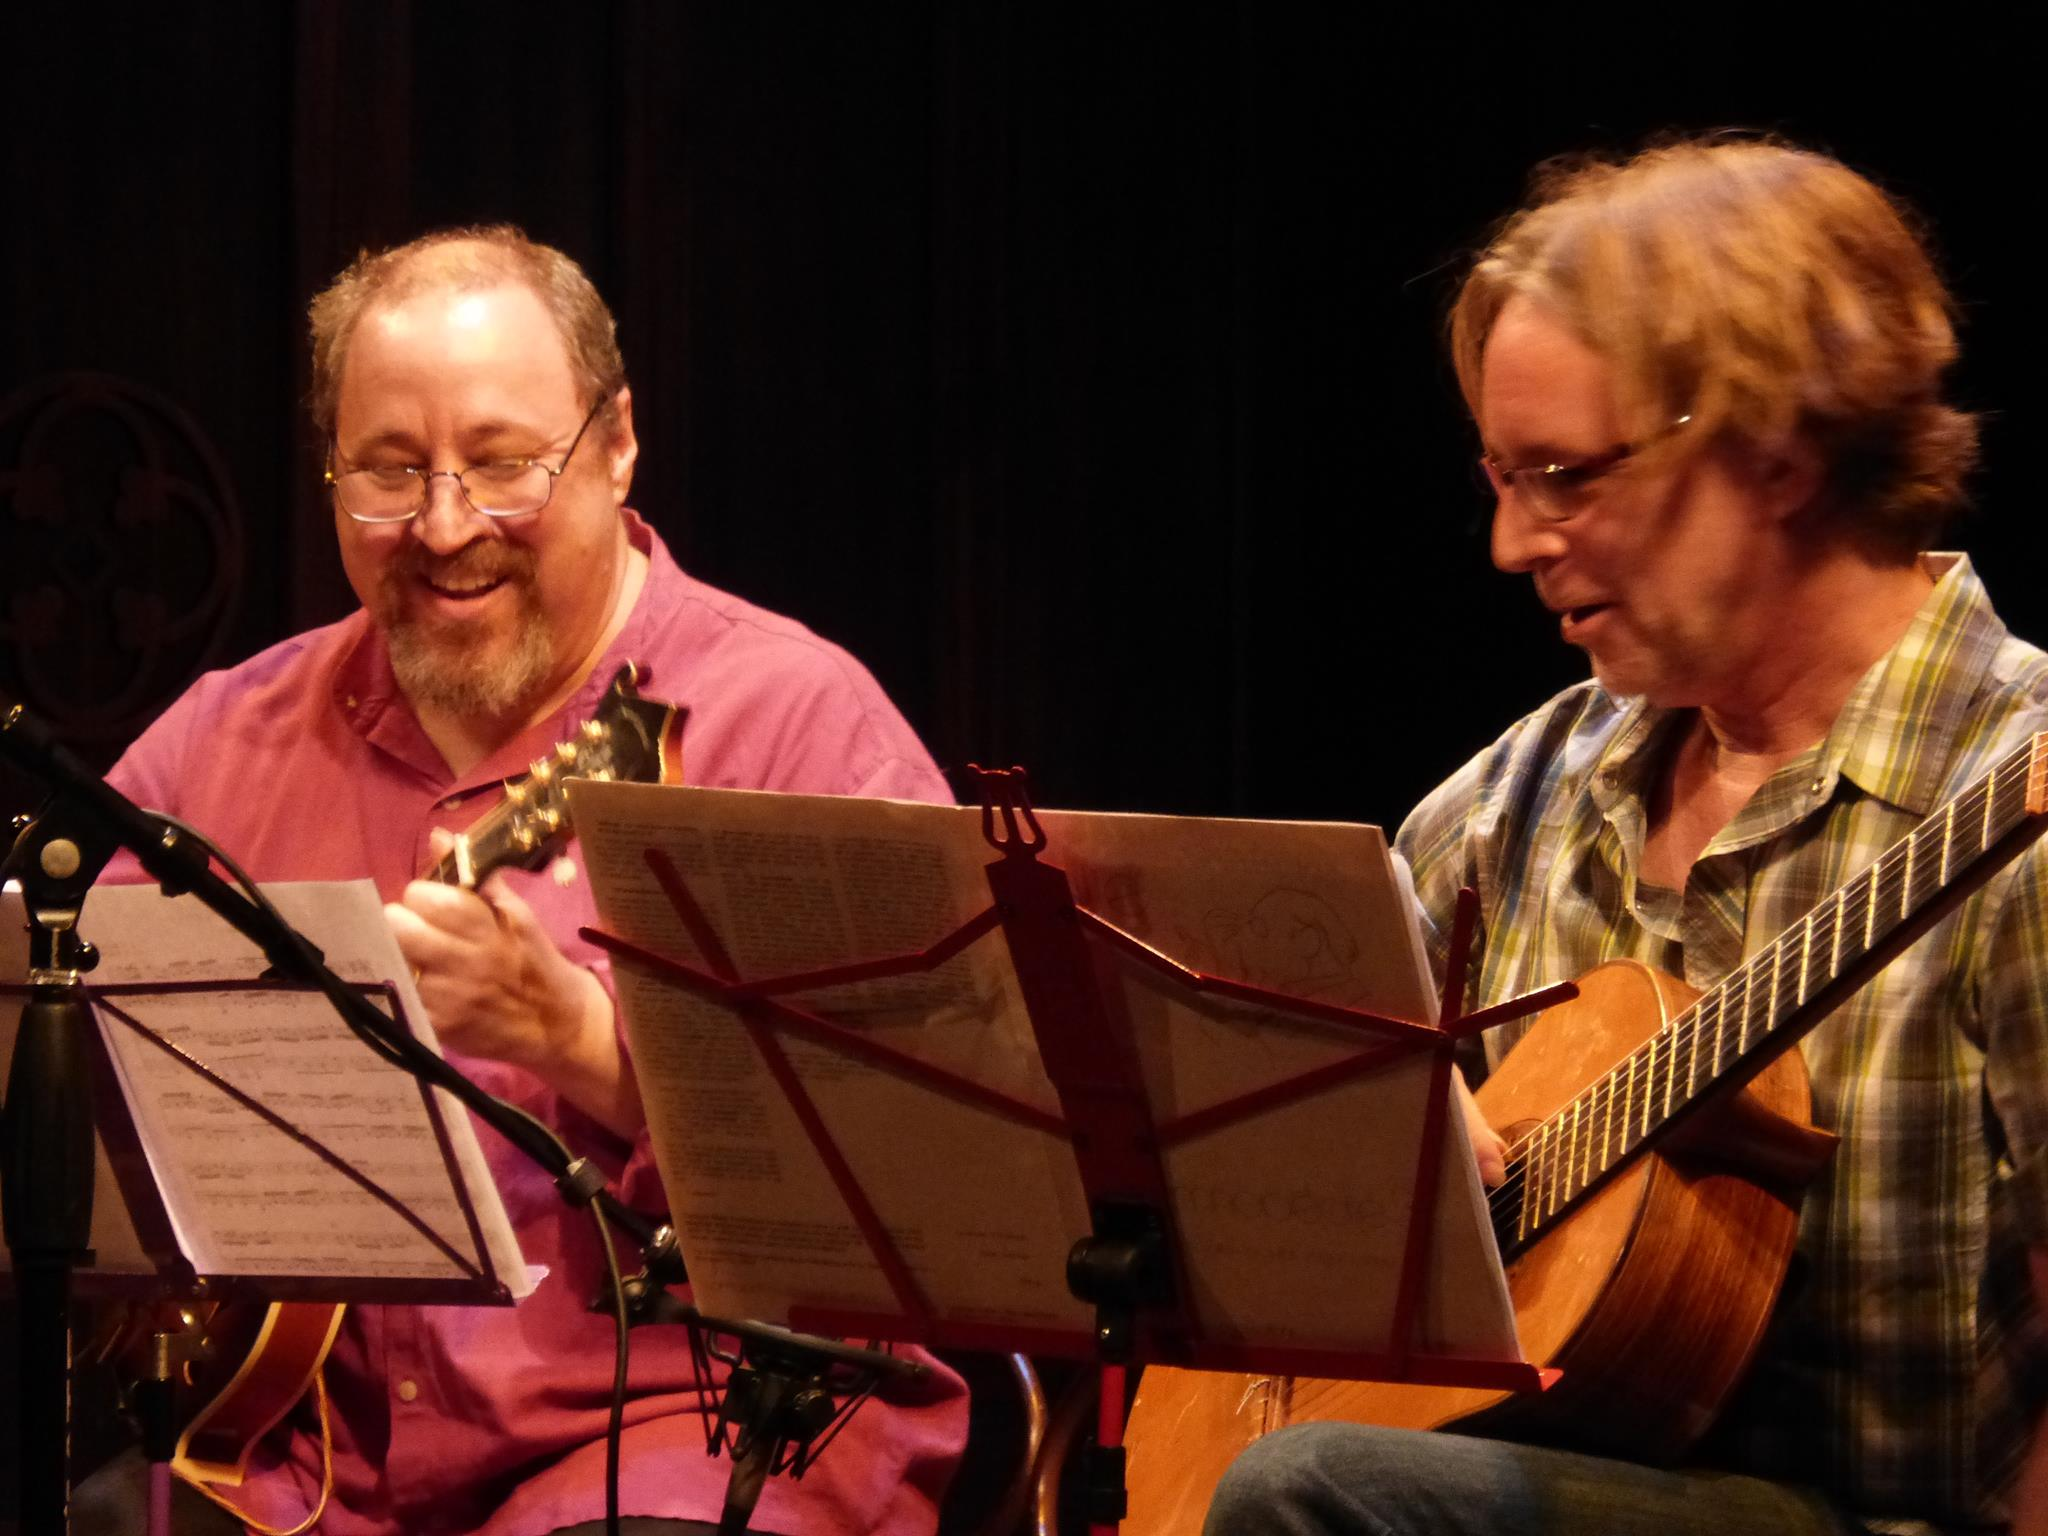 With Christopher Colucci playing classical music (!) for a concert at the Peoples Light and Theatre Company in Malvern, PA. August 2014.